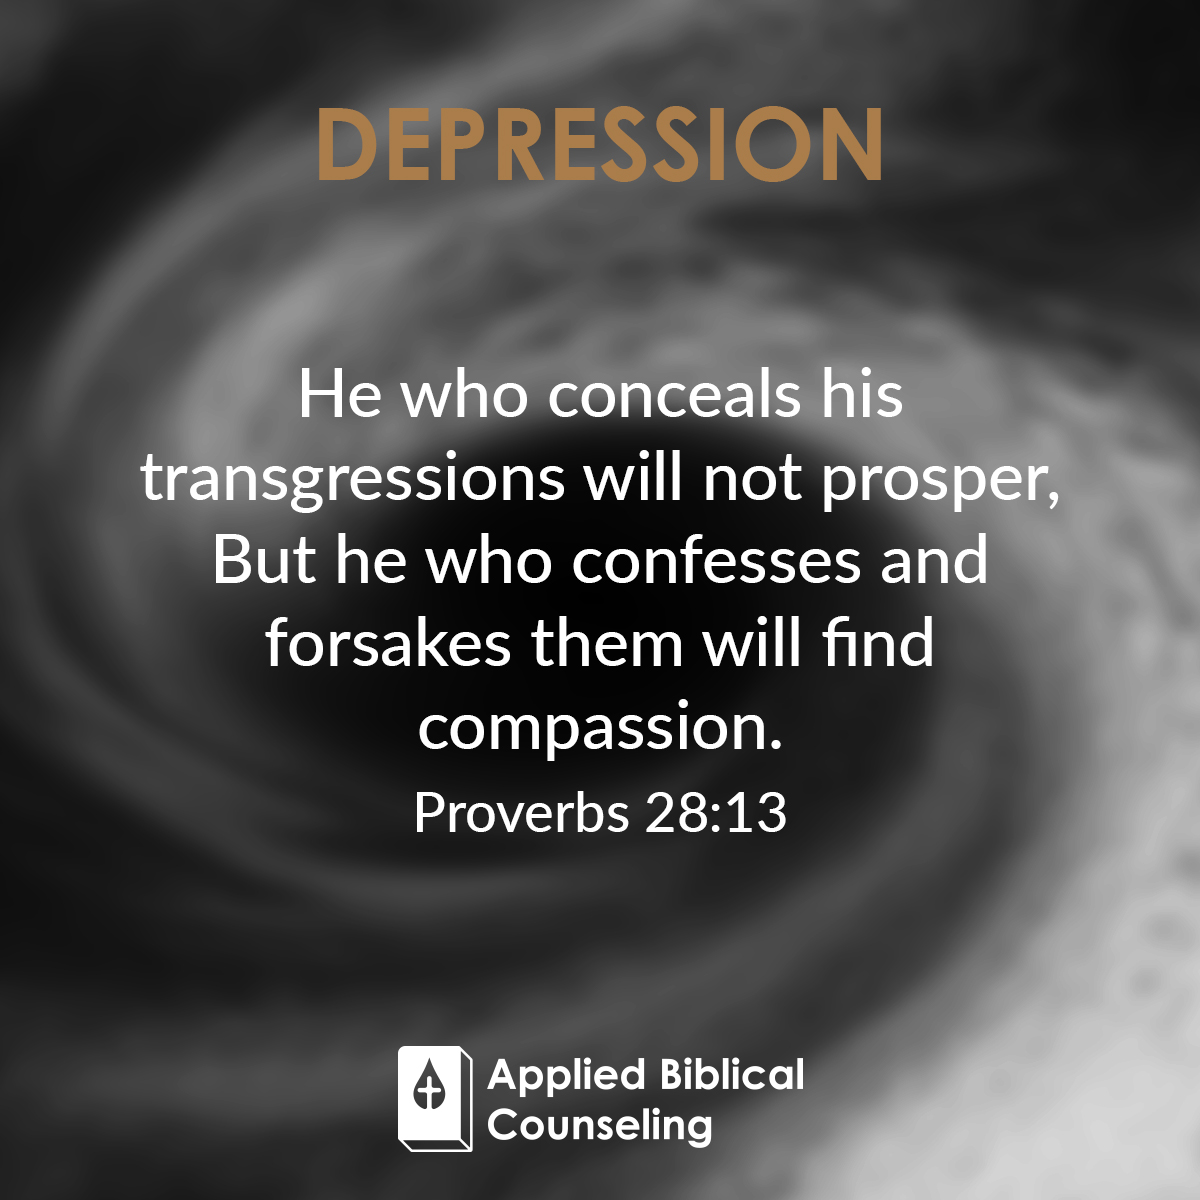 Applied Biblical Counseling Facebook w27 Depression 4